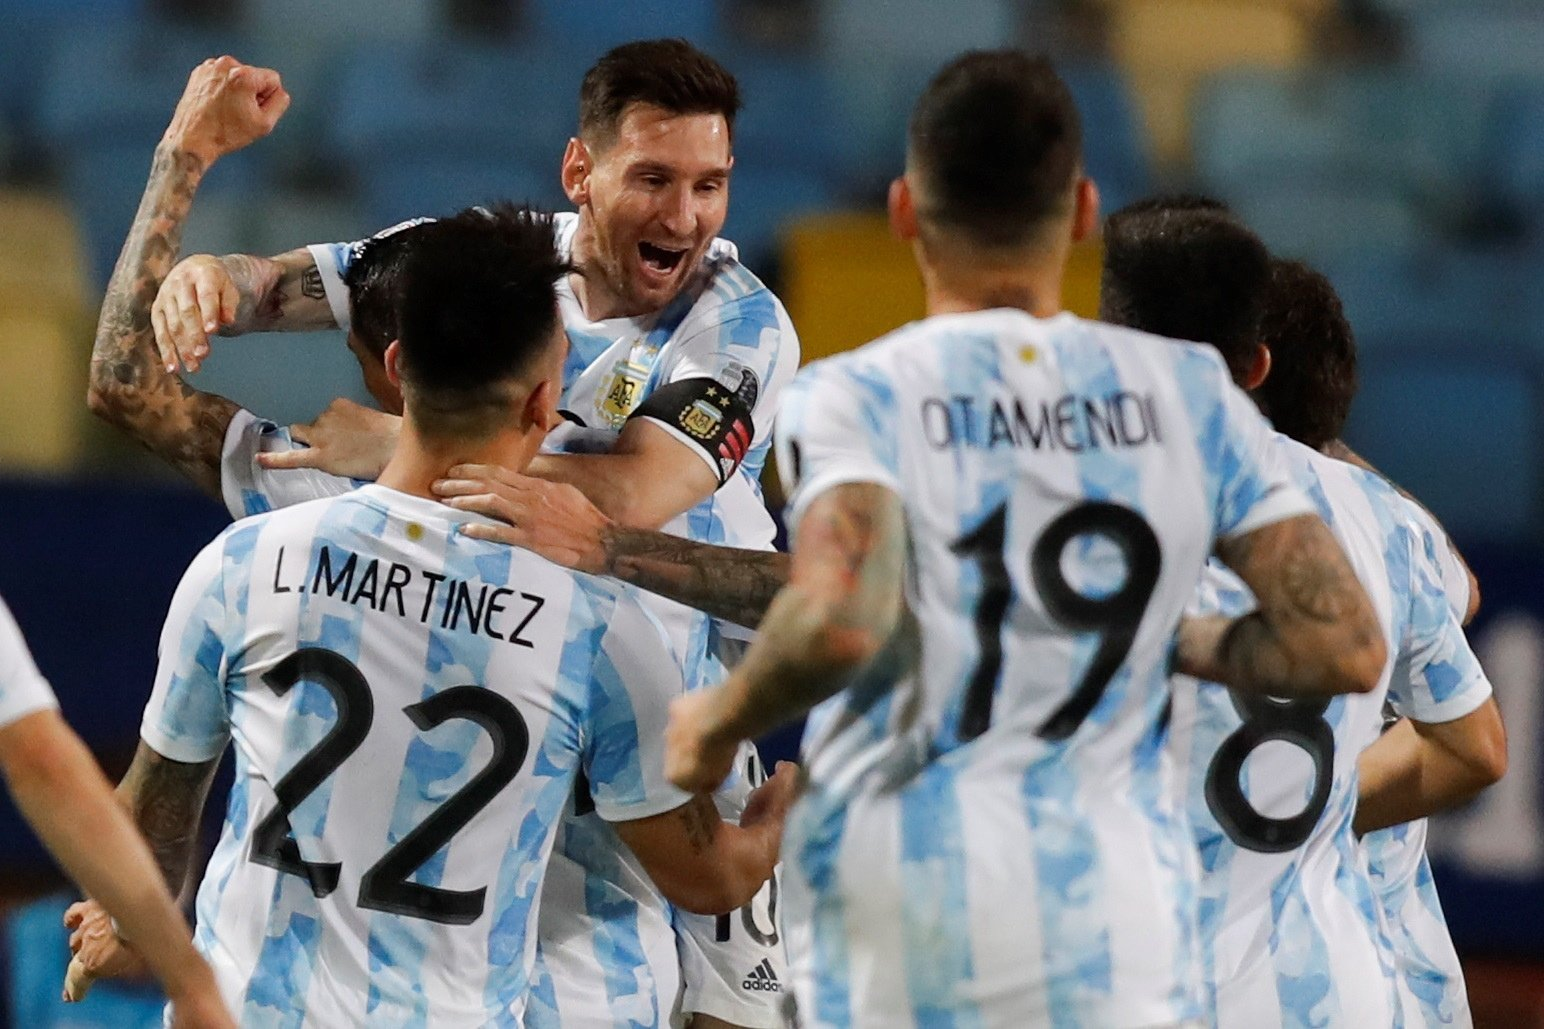 Argentina's Lionel Messi (C) celebrates with his teammates after scoring during the Copa America 2021 quarterfinals against Ecuador at the Pedro Ludovico Teixeira Olympic Stadium, Goiania, Brazil, July 3, 2021. (EPA Photo)